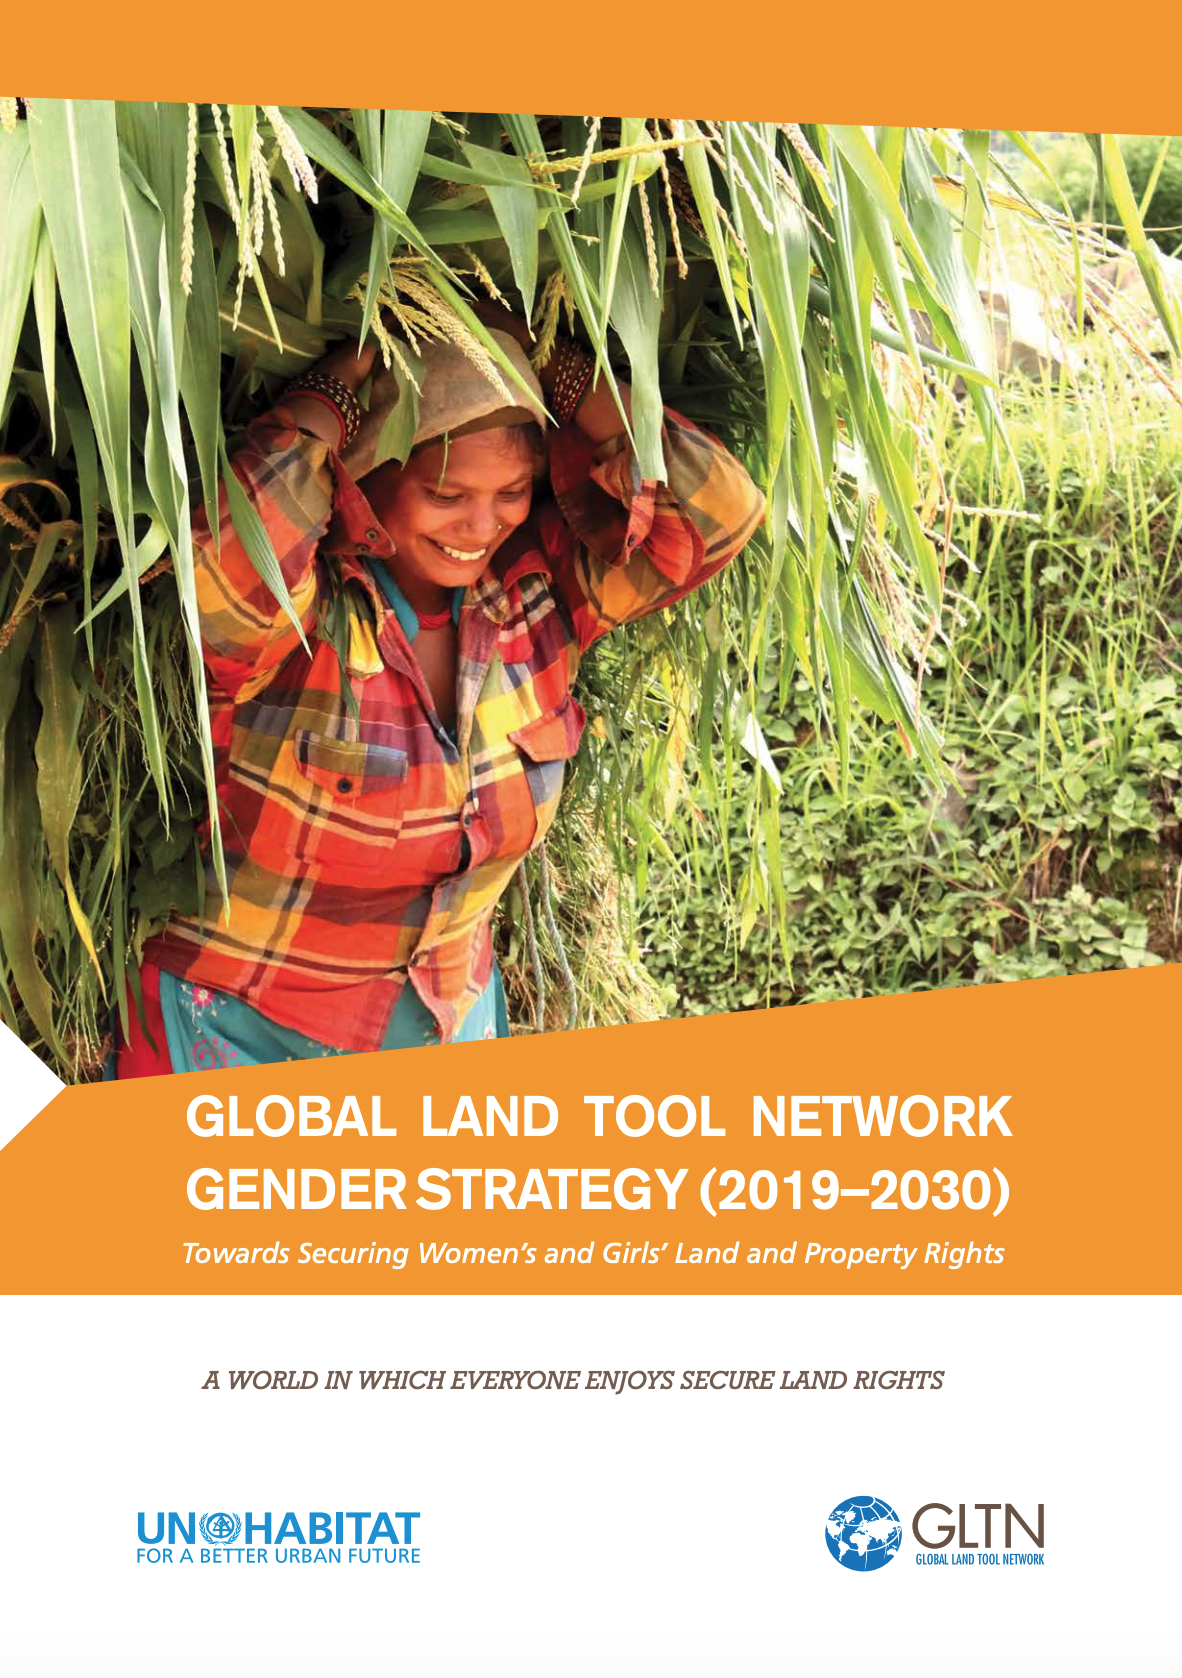 GLTN Gender Strategy (2019–2030): Towards Securing Women's and Girls' Land and Property Rights cover image